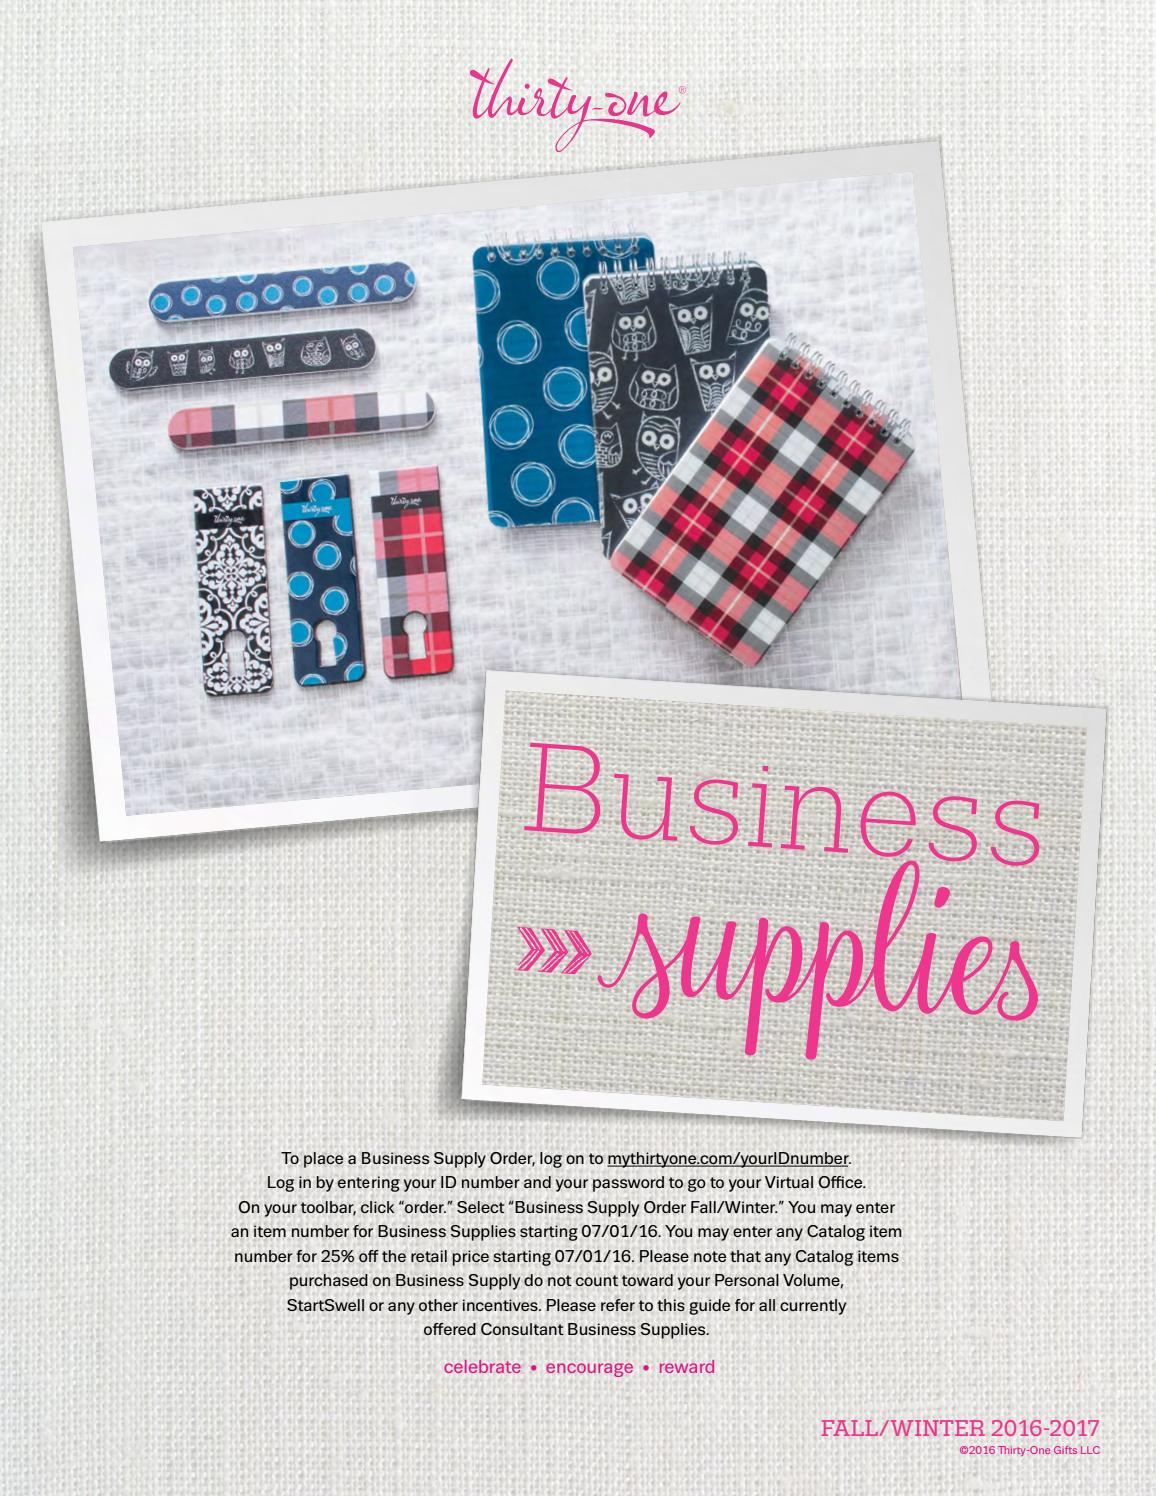 Business supplies guide fall winter 2016 us by kathy blon issuu magicingreecefo Image collections